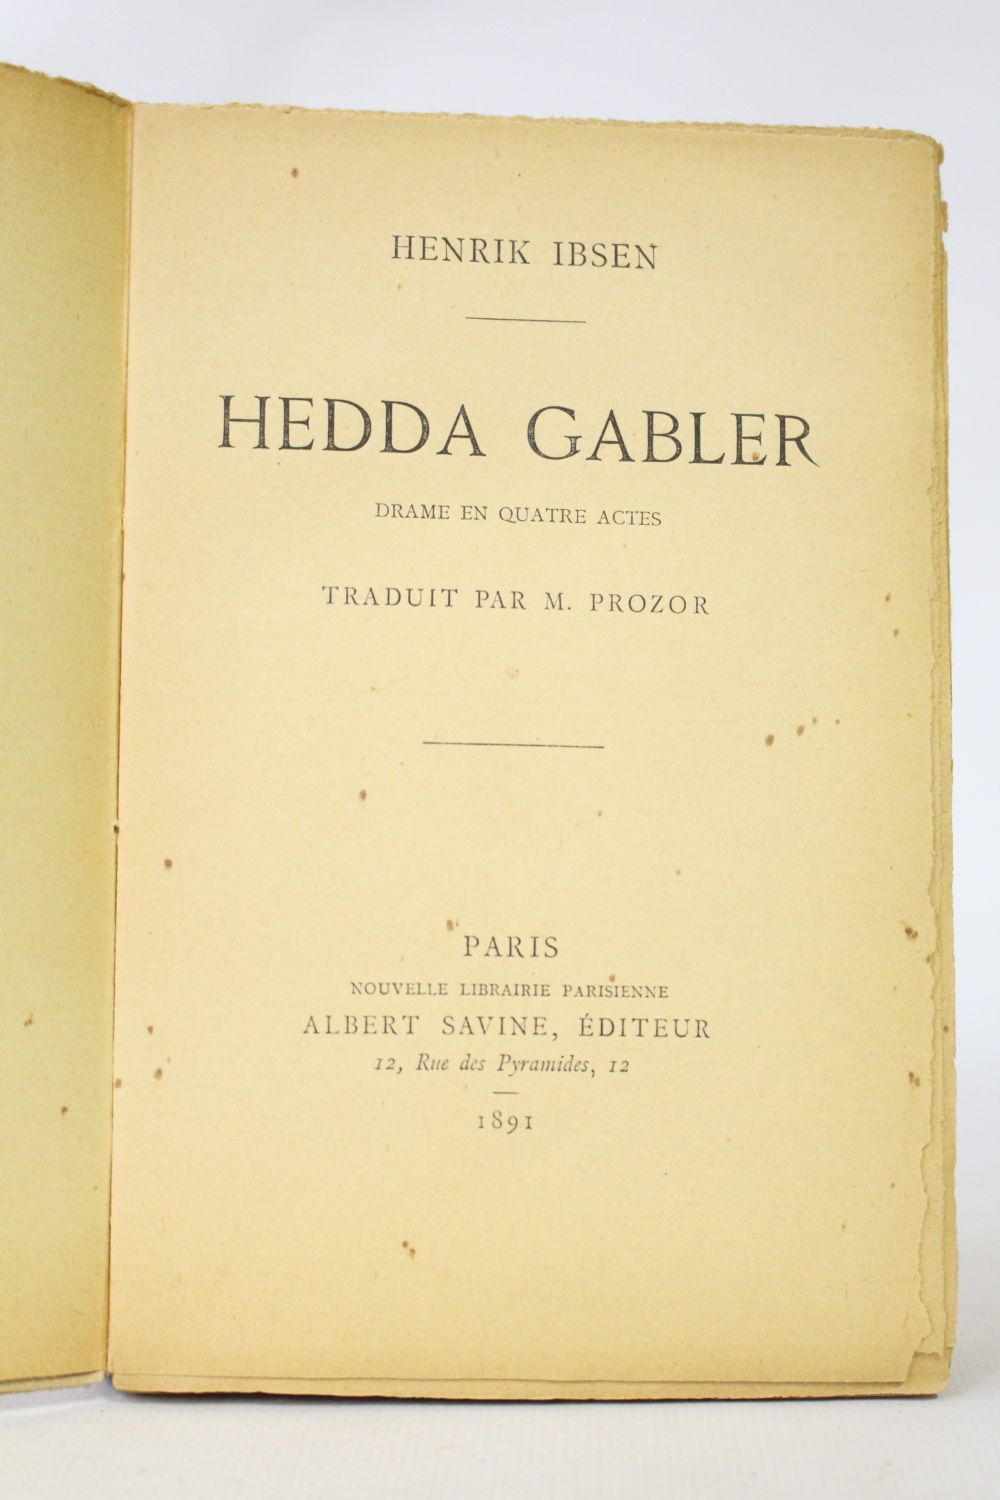 an analysis of the naturalistic social drama hedda gabler by henrik ibsen Ghosts - a synopsis and analysis of the play by ibsen hedda gabler - an analysis ibsen peanuts and the ibsen drama social significance of henrik ibsen.